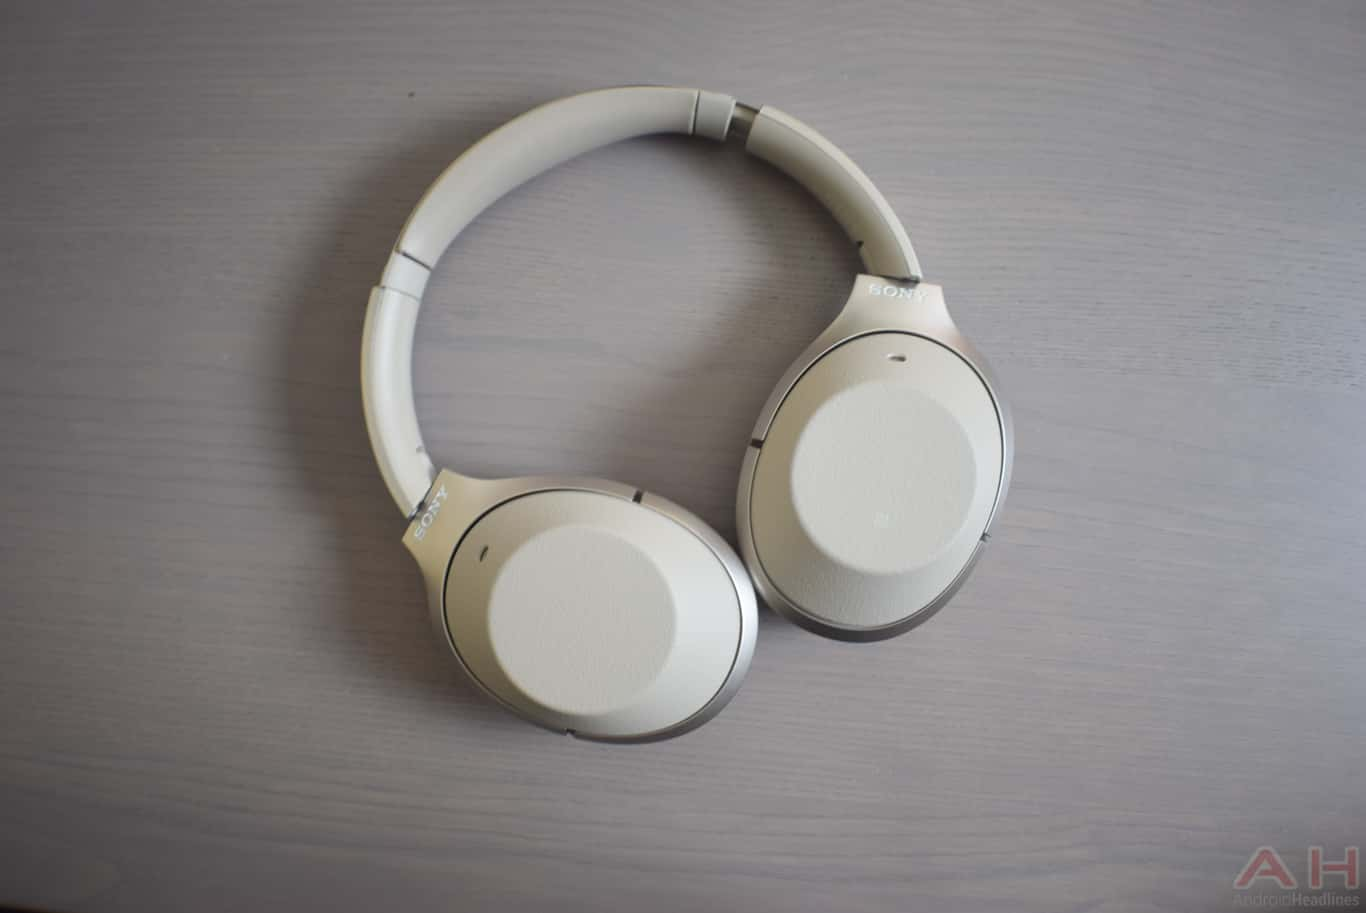 Sony WH 1000X M2 Review AM AH 0147